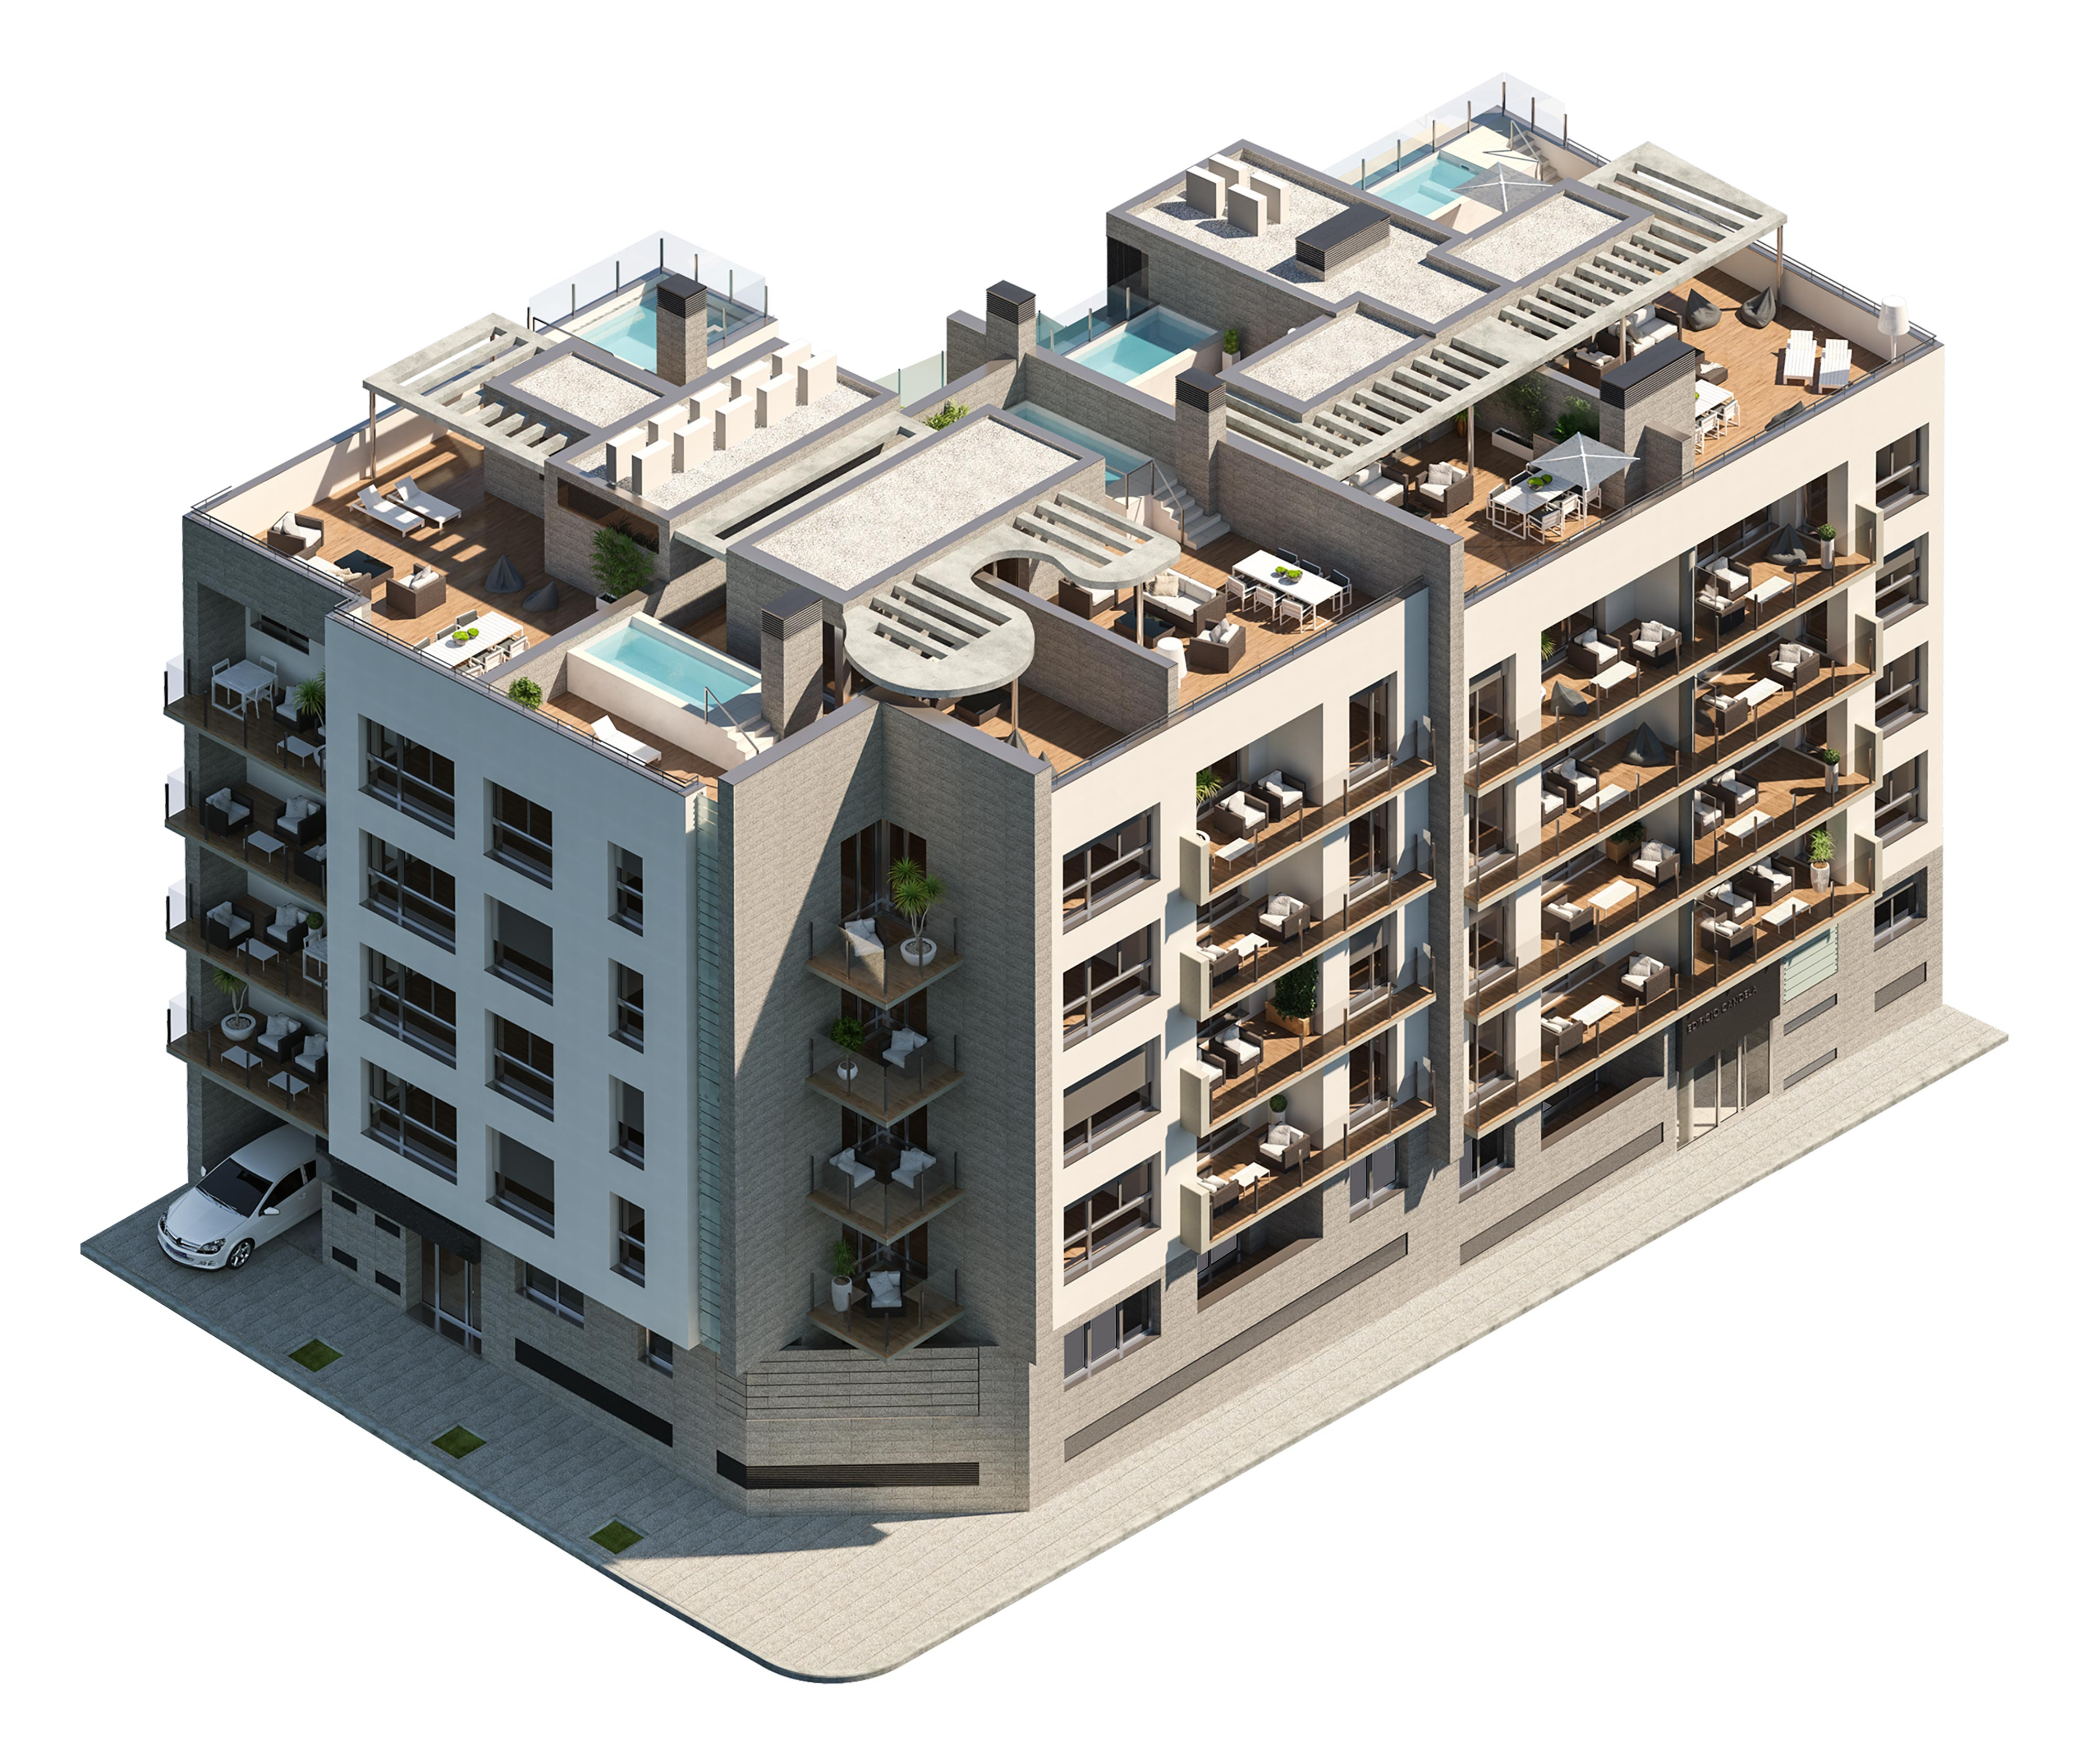 axonometric view of a block of flatst by GAYARRE infografia